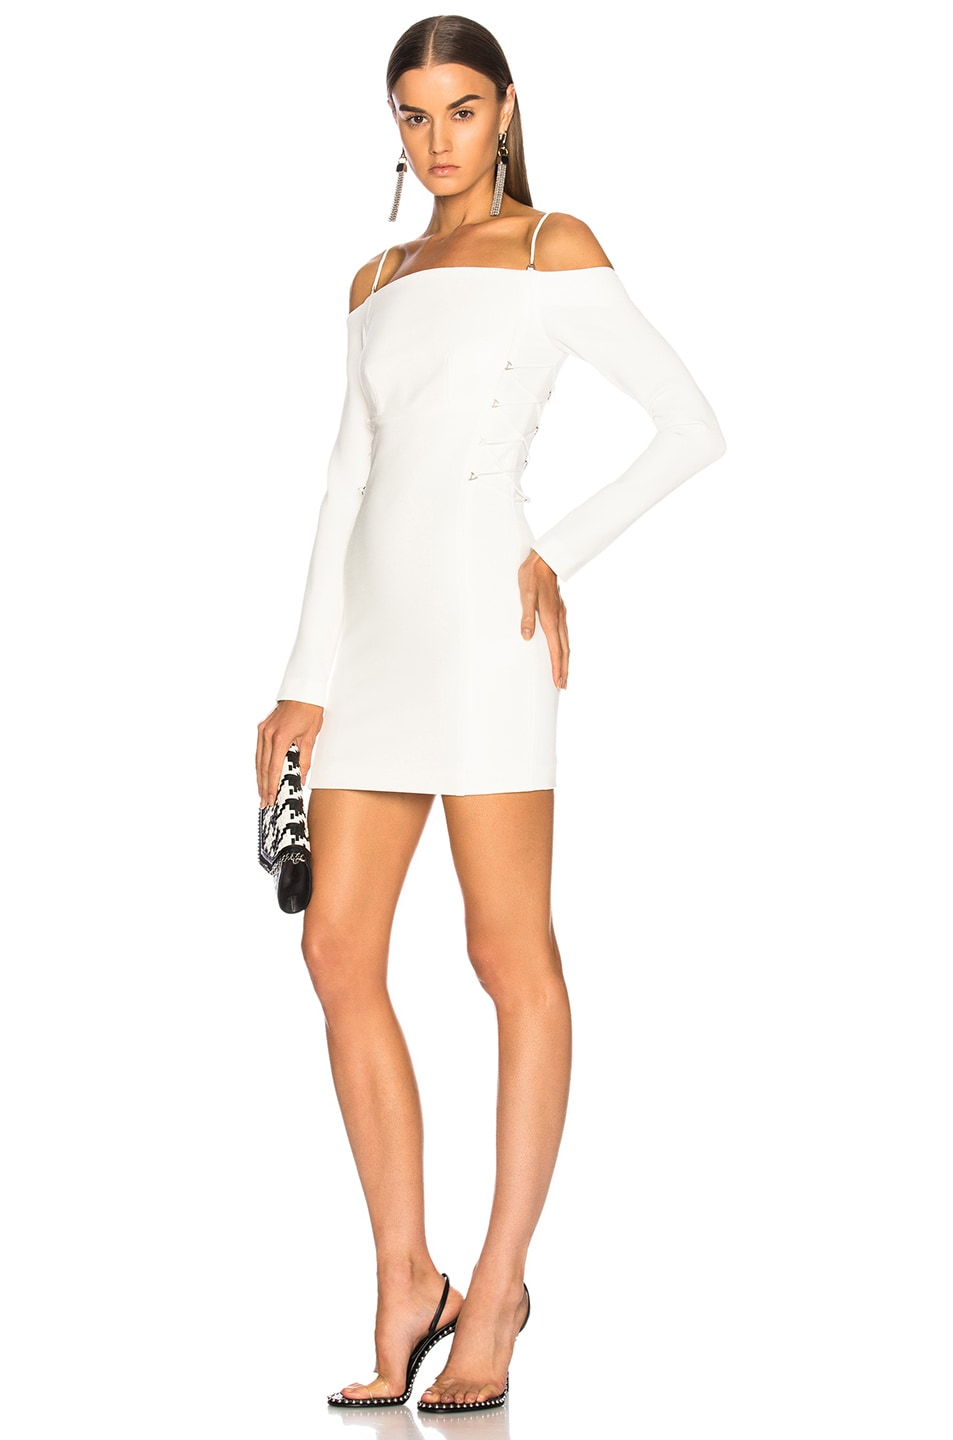 36c518fe23 Image 1 of Dion Lee Long Sleeve Mini Dress in White